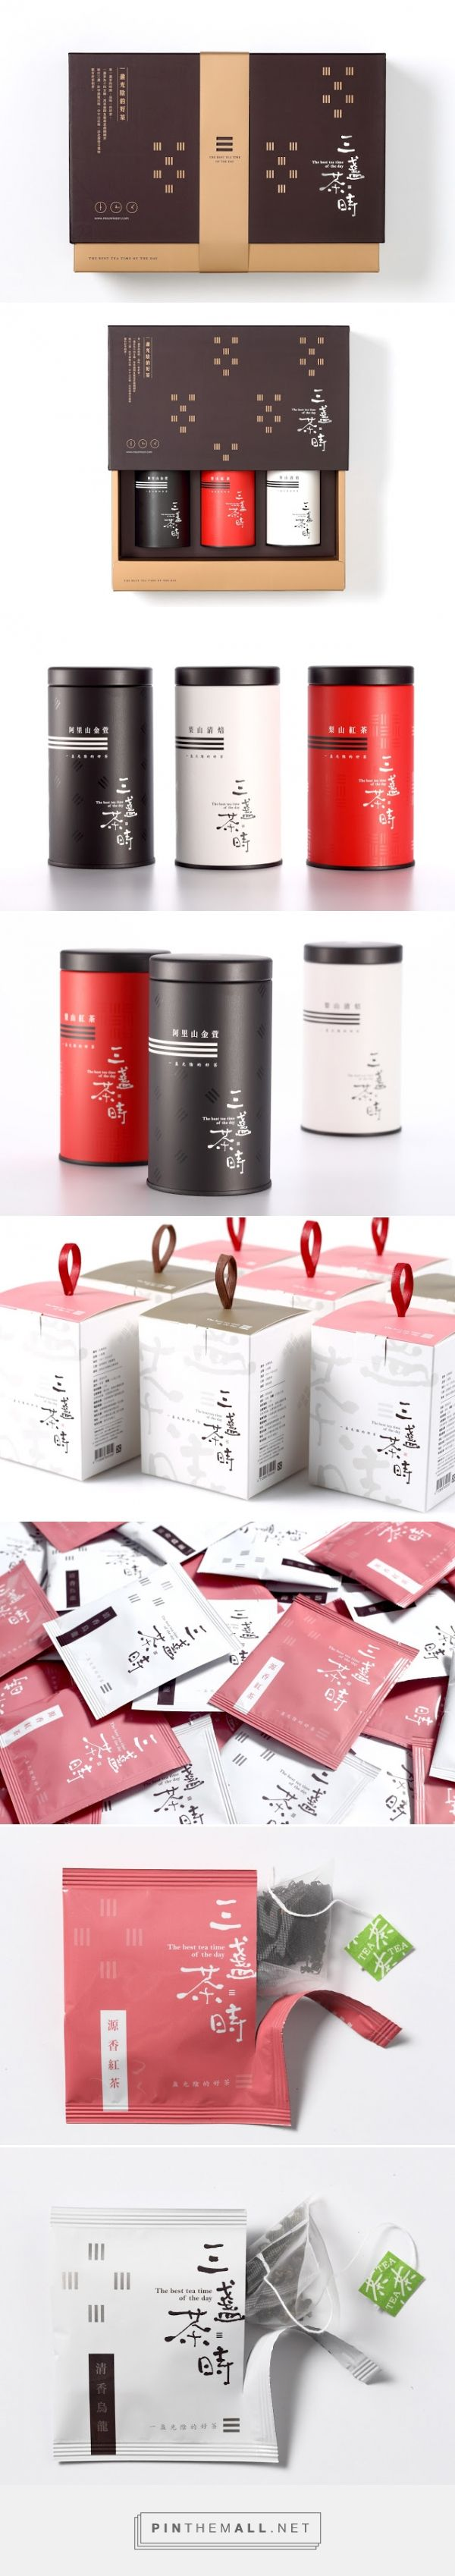 The Best Tea Time of the Day packaging designed by 存在設計 a.design (Taiwan) - http://www.packagingoftheworld.com/2016/02/the-best-tea-time-of-day.html